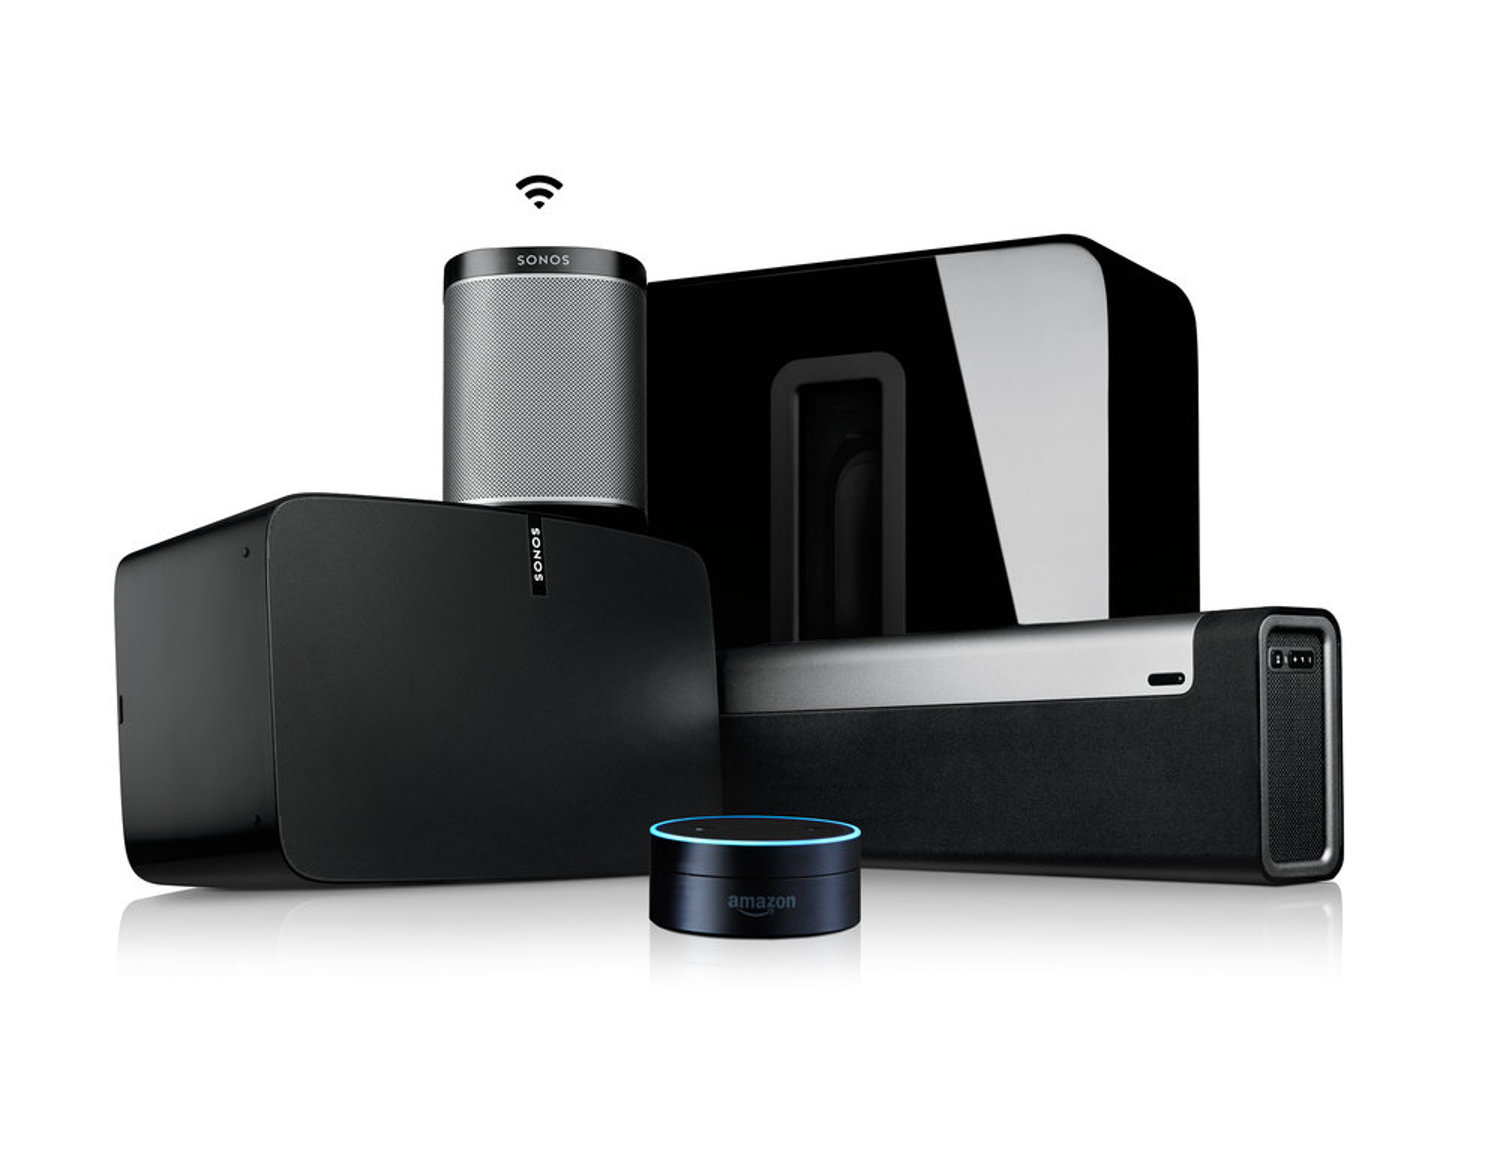 sonos the heart of the connected home electronic house